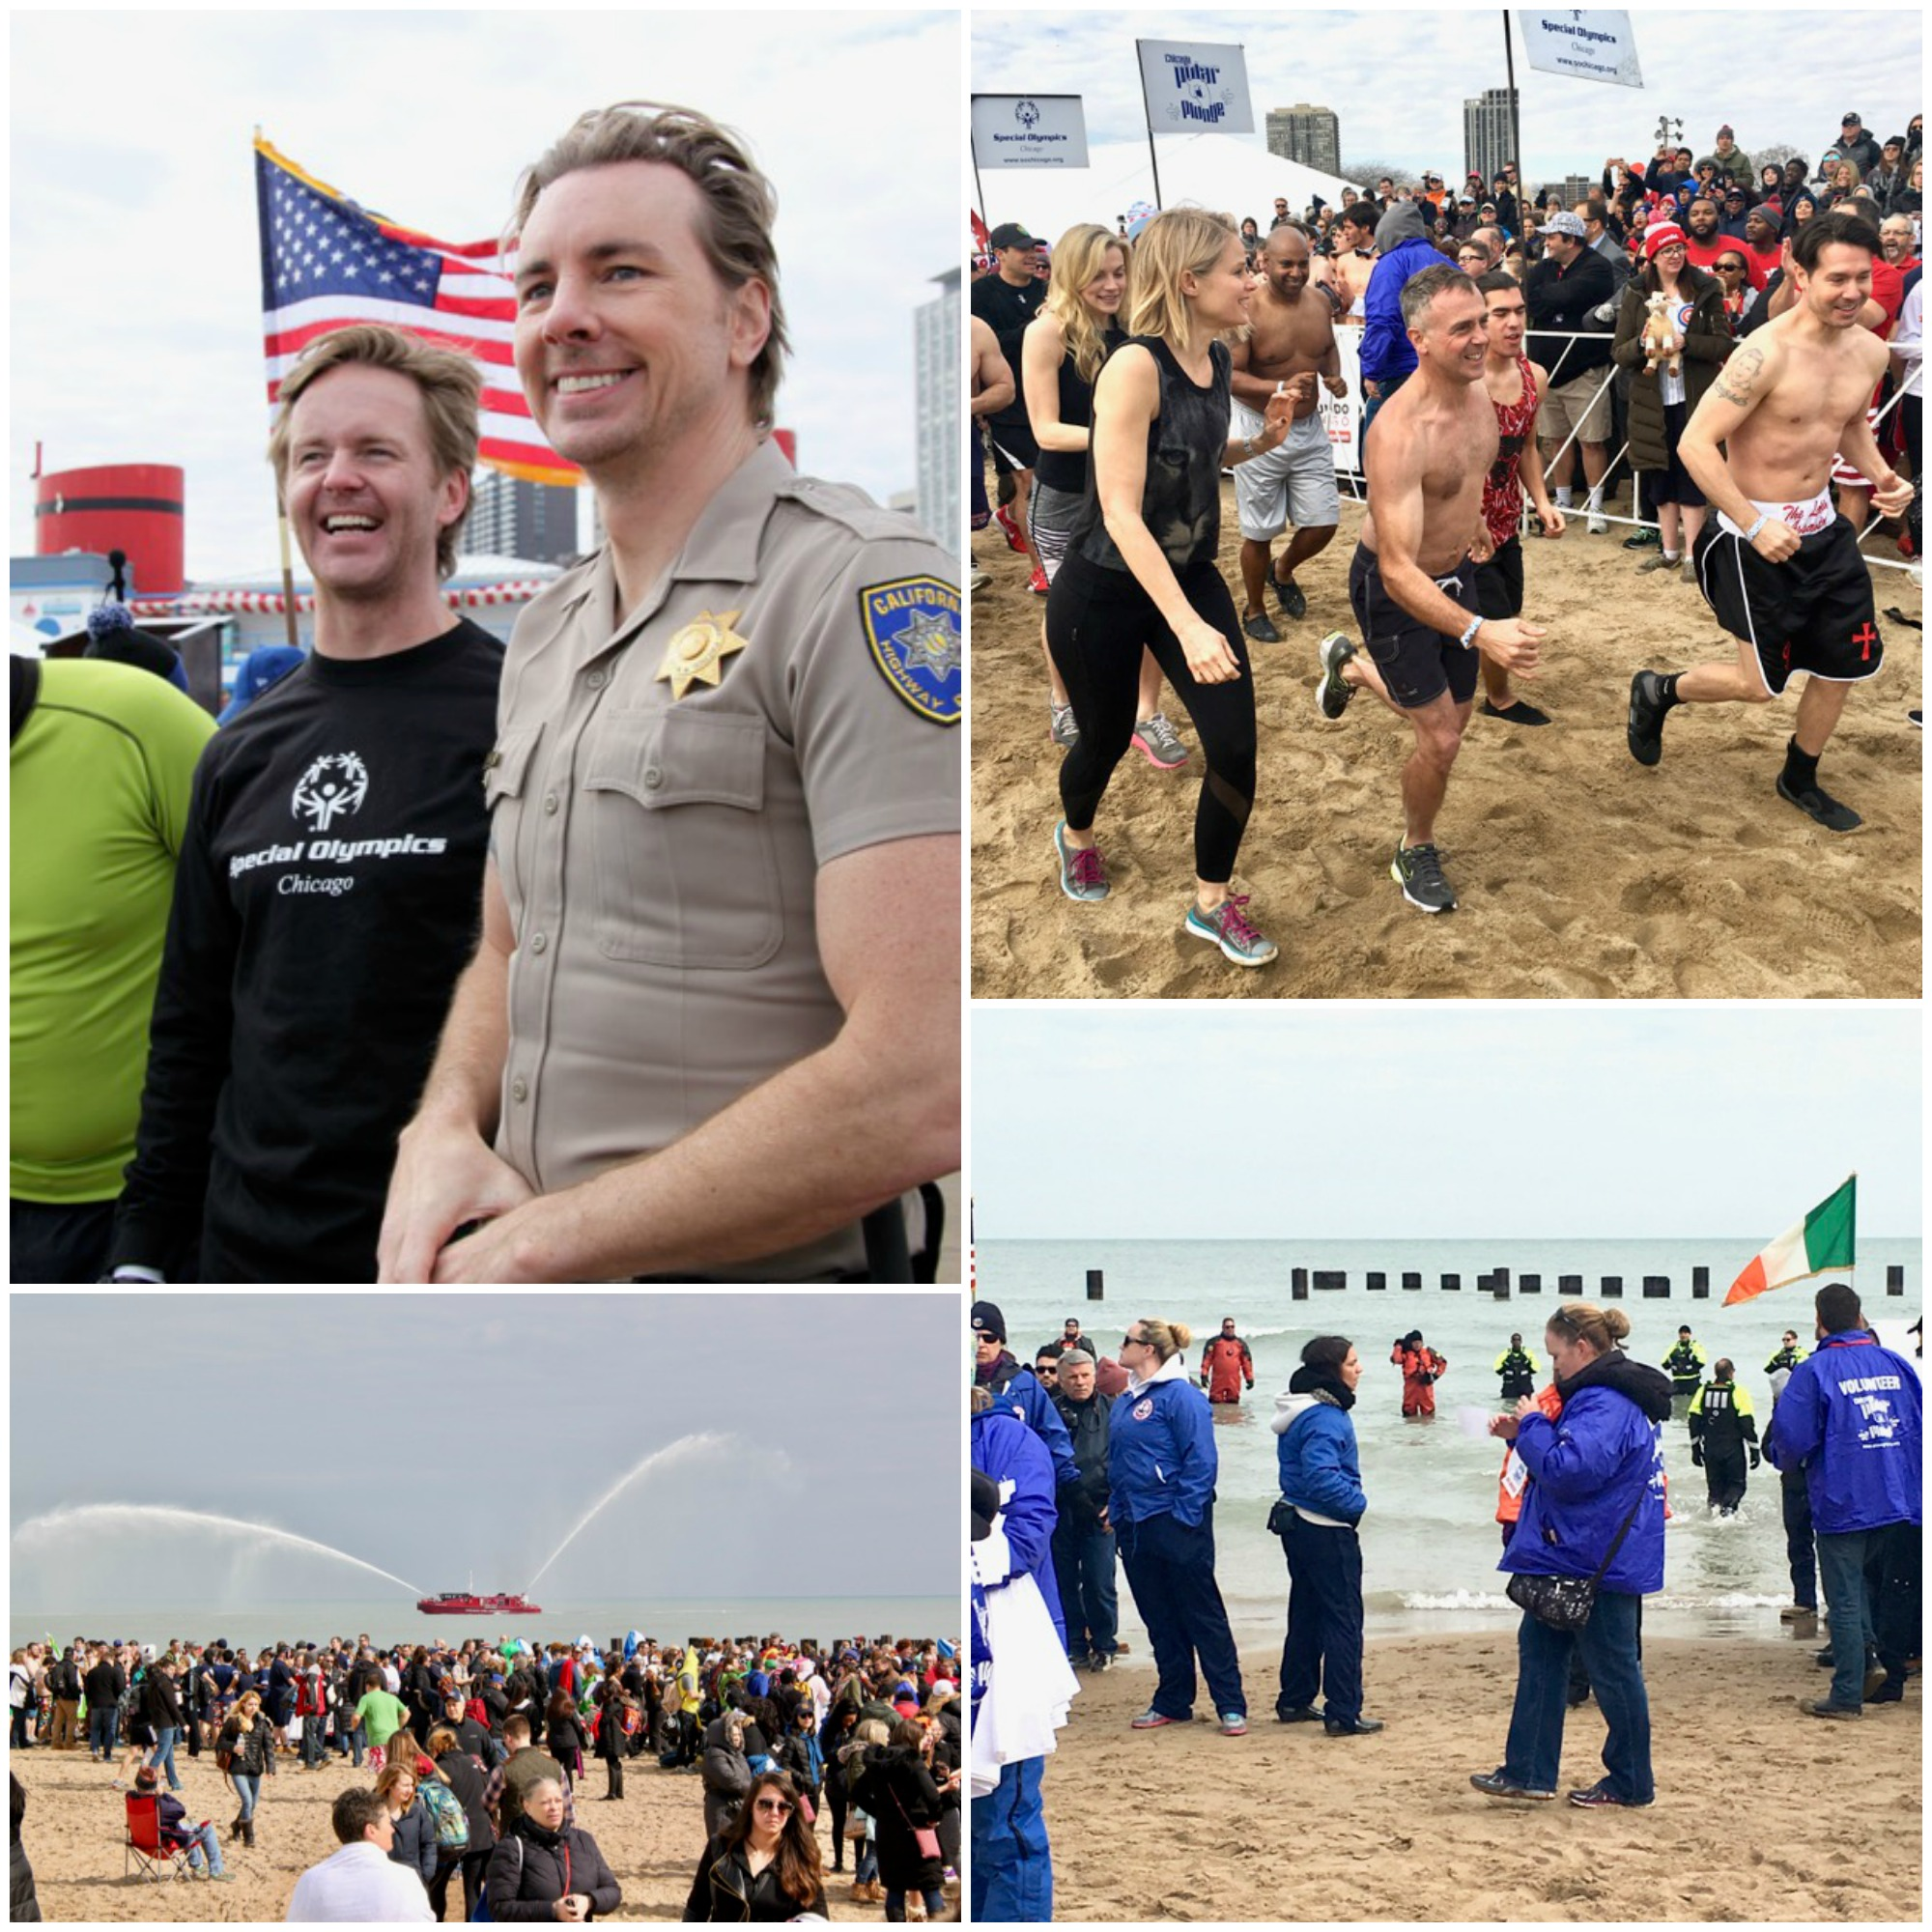 Spark the Season with Johnsonville at the Chicago Polar Plunge